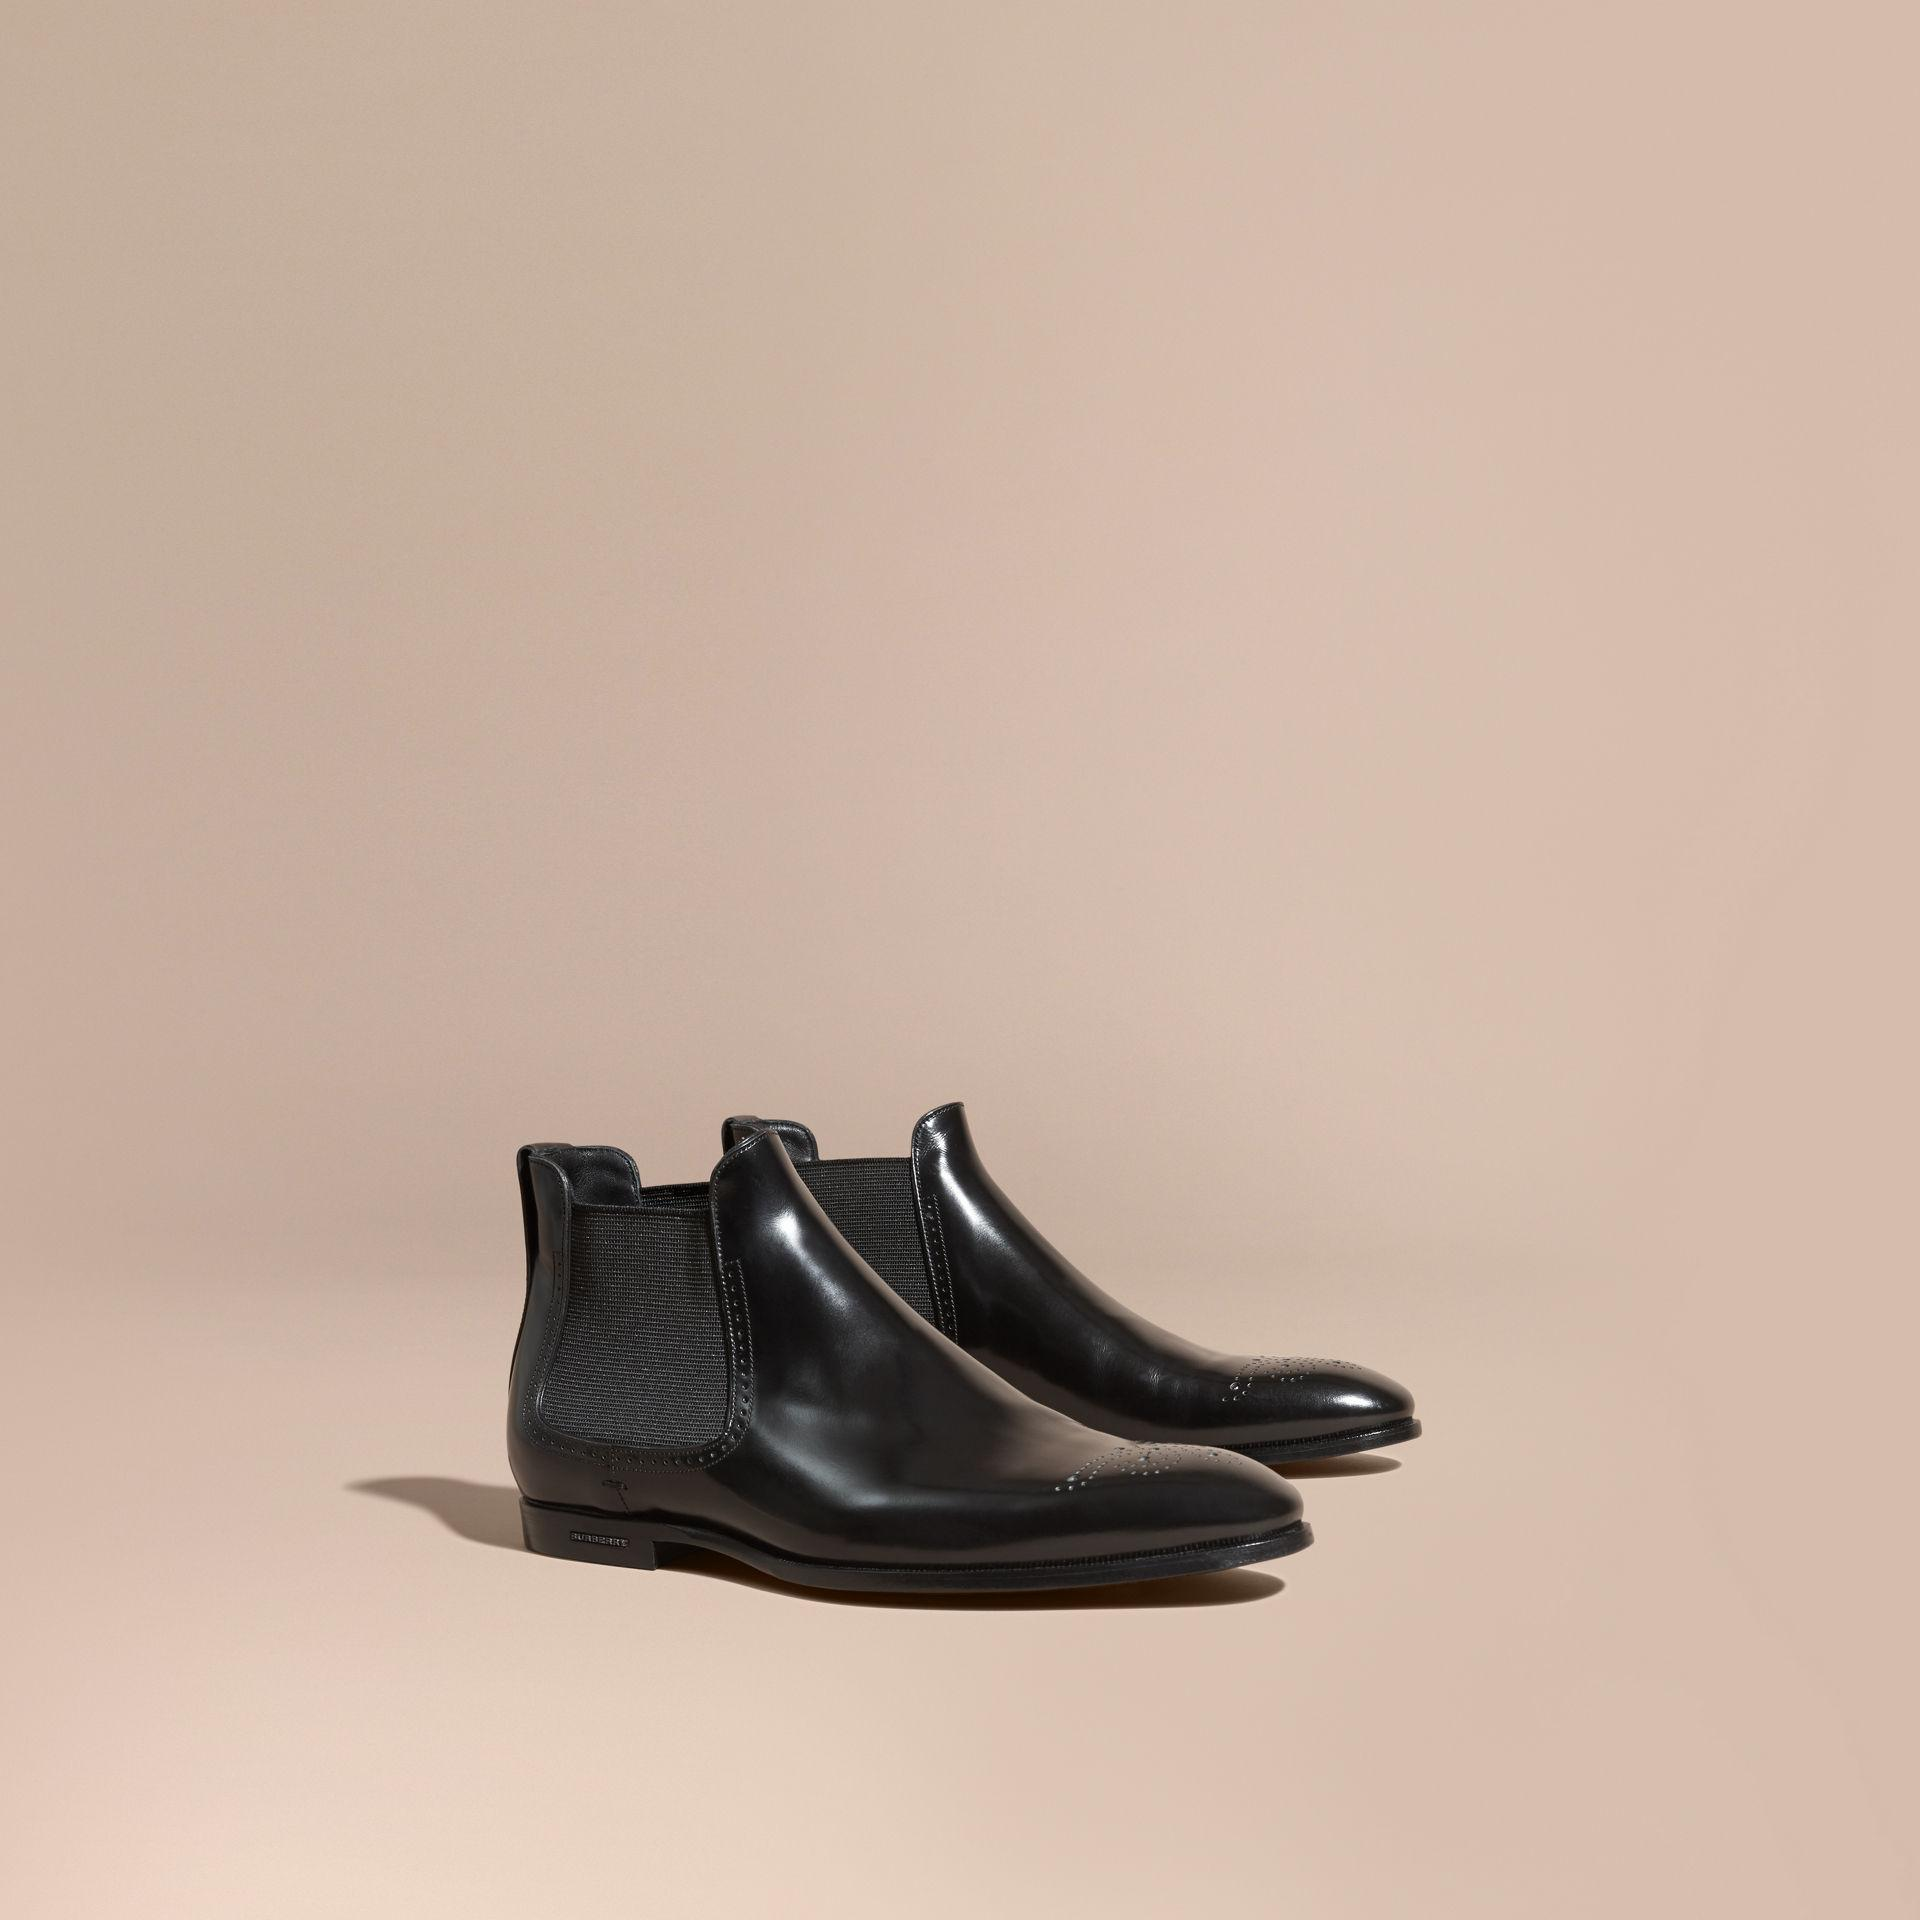 burberry perforated detail leather chelsea boots black in